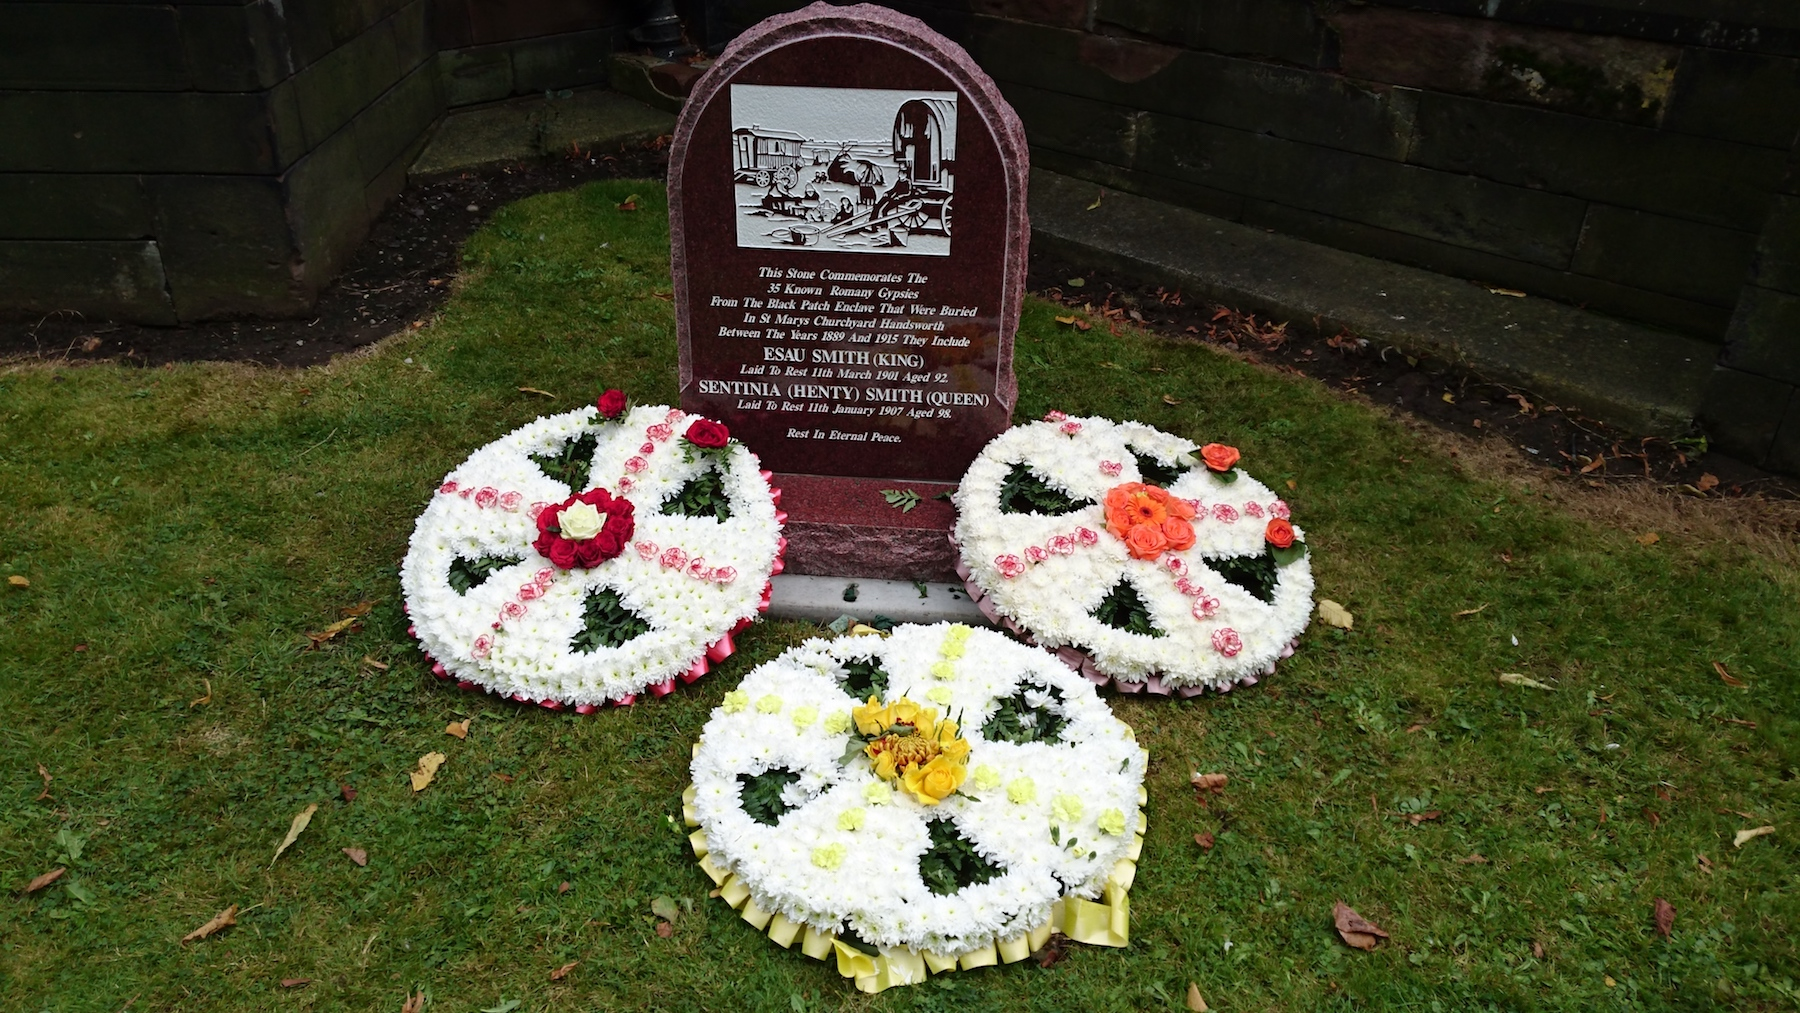 The new Memorial after the dedication service.